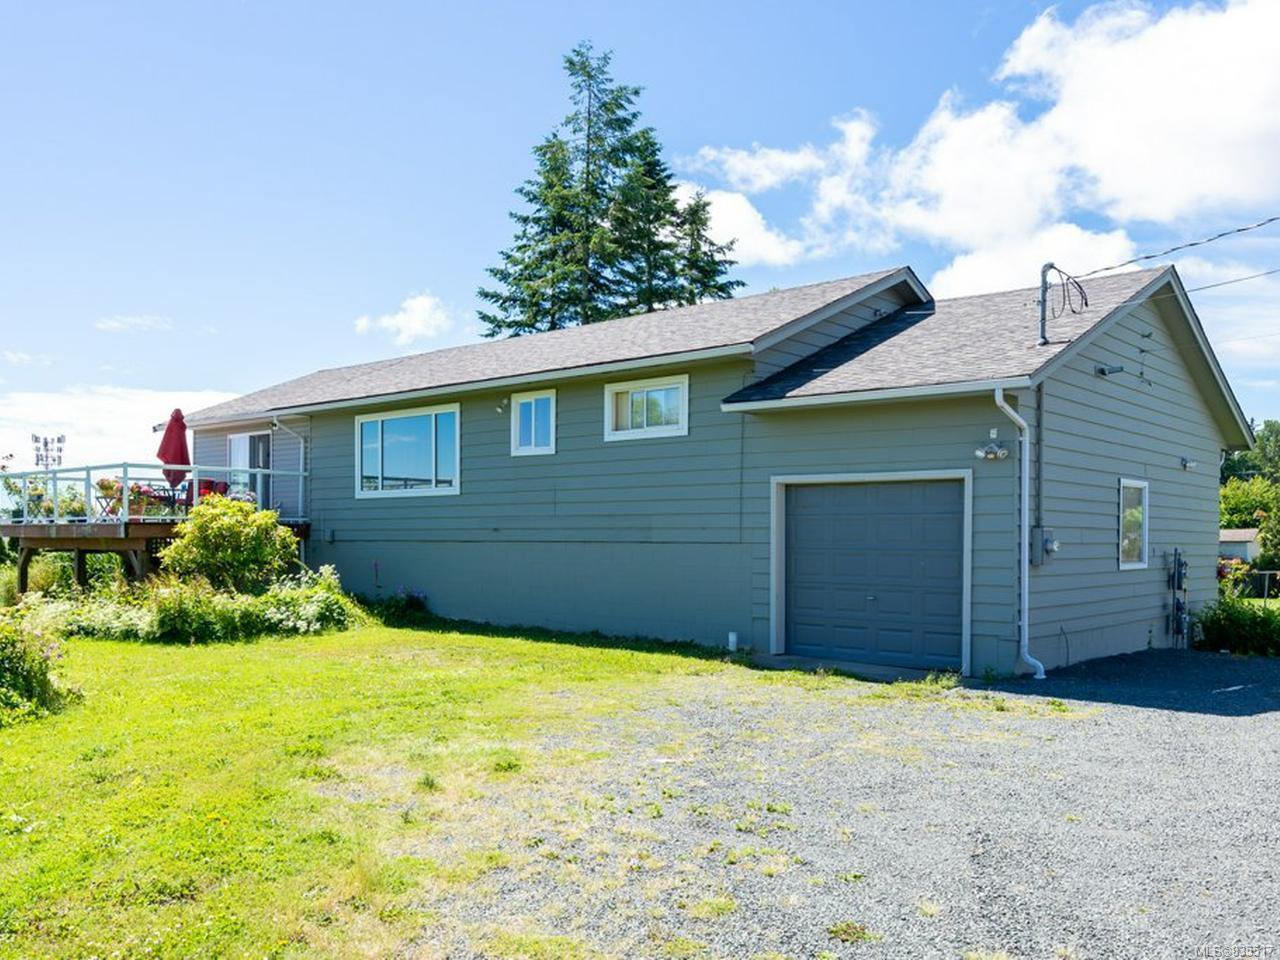 Photo 2: Photos: 109 Larwood Rd in CAMPBELL RIVER: CR Willow Point Single Family Detached for sale (Campbell River)  : MLS®# 835517